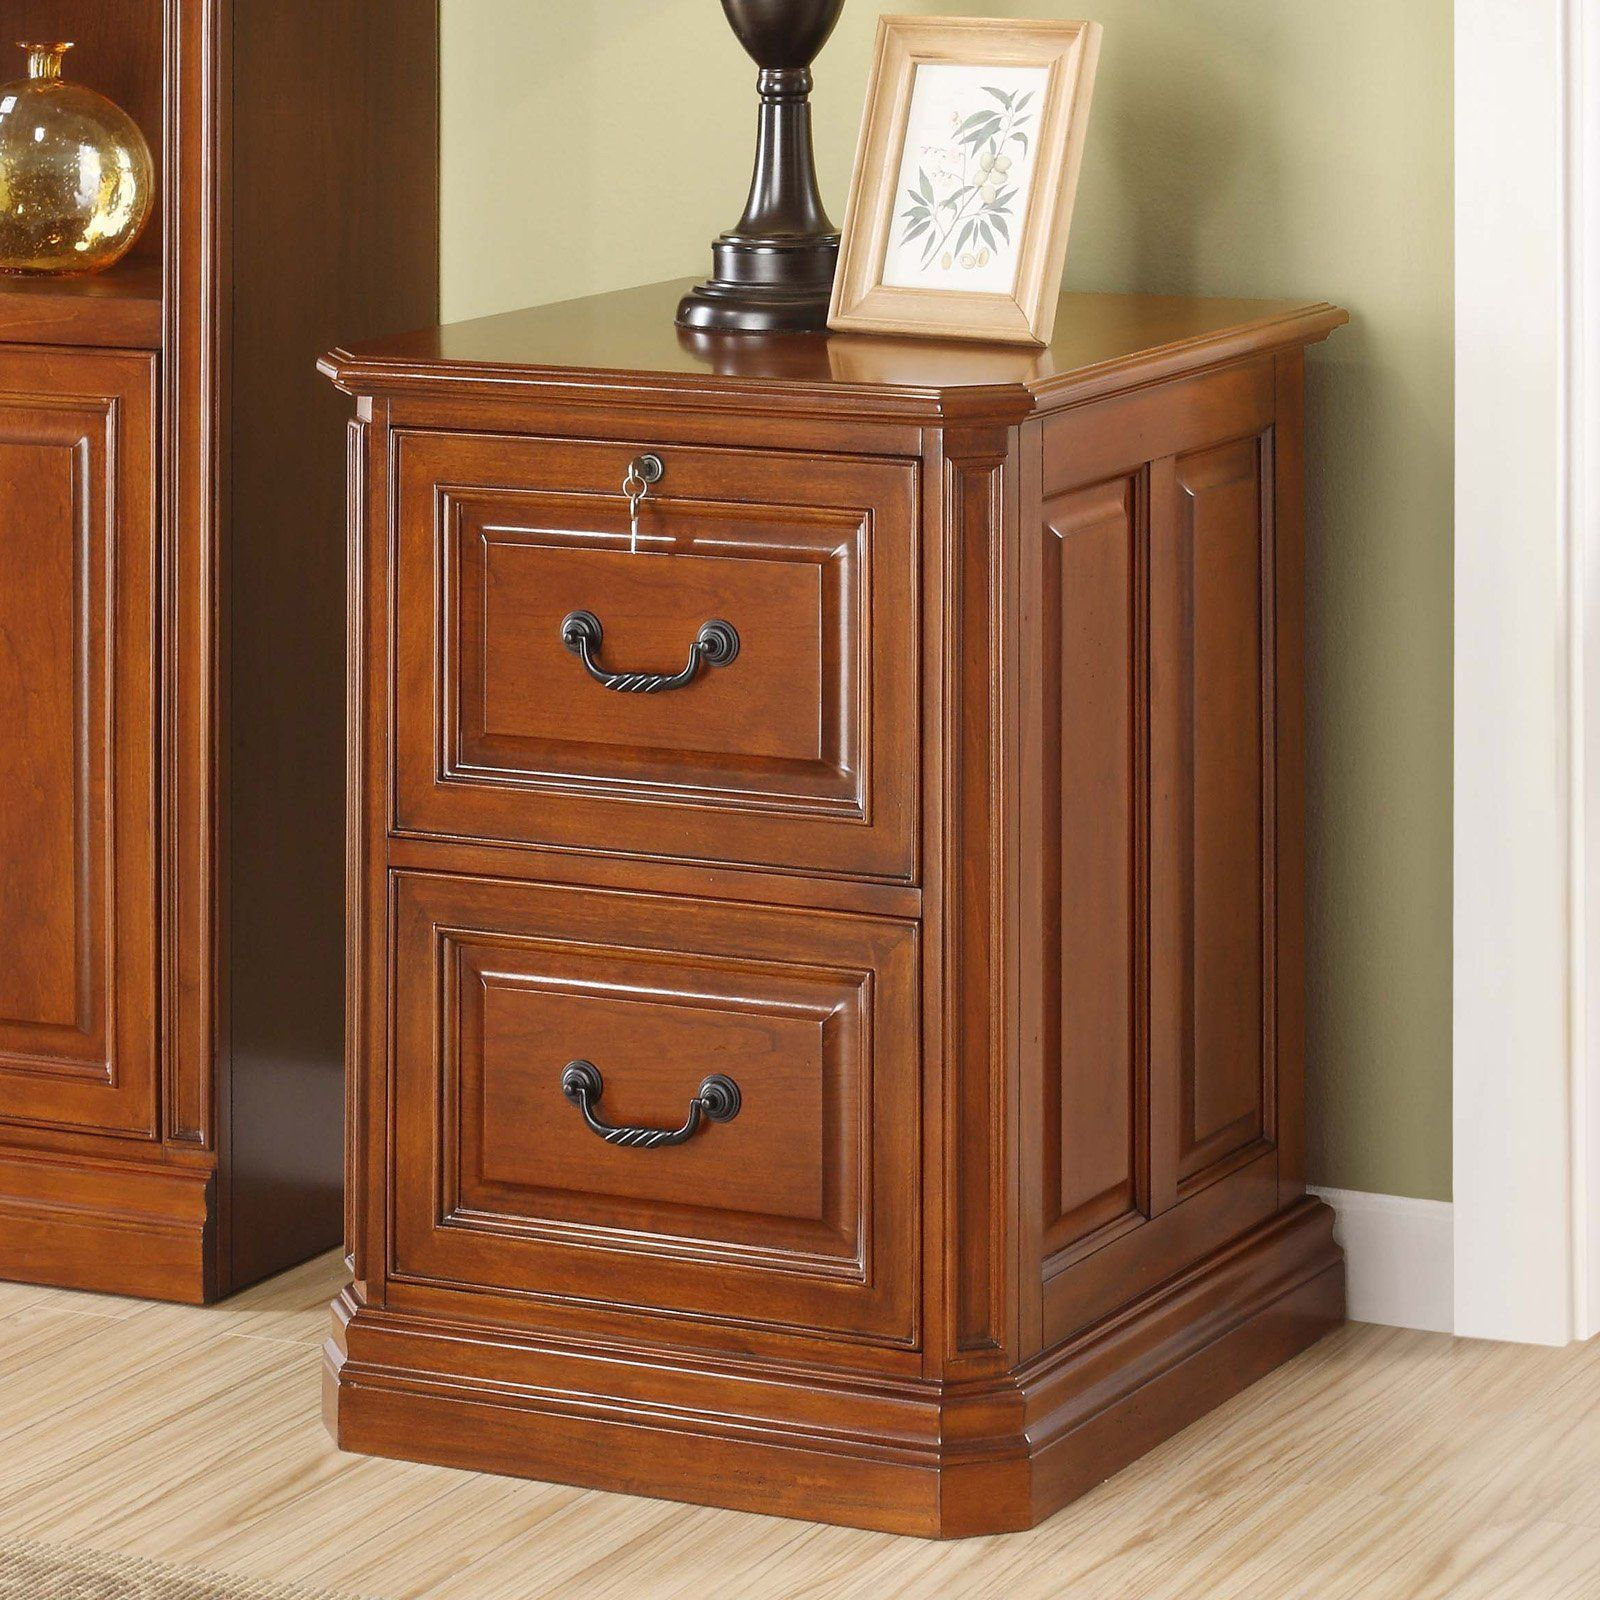 Whalen Augusta 2 Drawer File Www Hayneedle Com Filing Cabinet Wood File Wood Construction